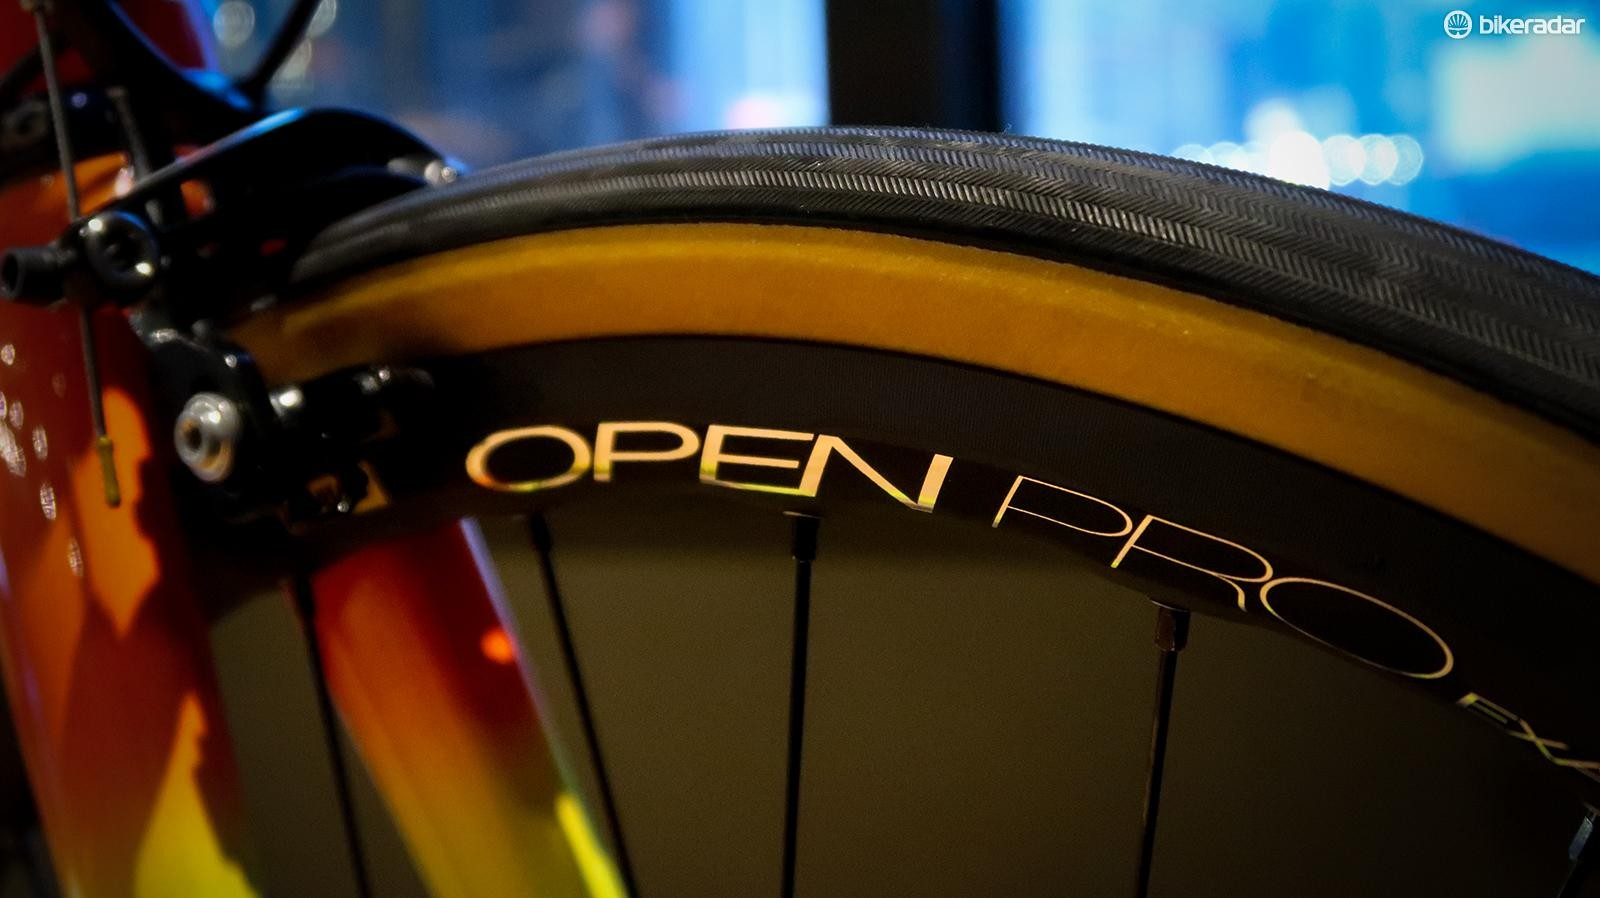 Rim brake version of the Open Pro comes in a version with a machined braking track as well as the Exalith version shown here